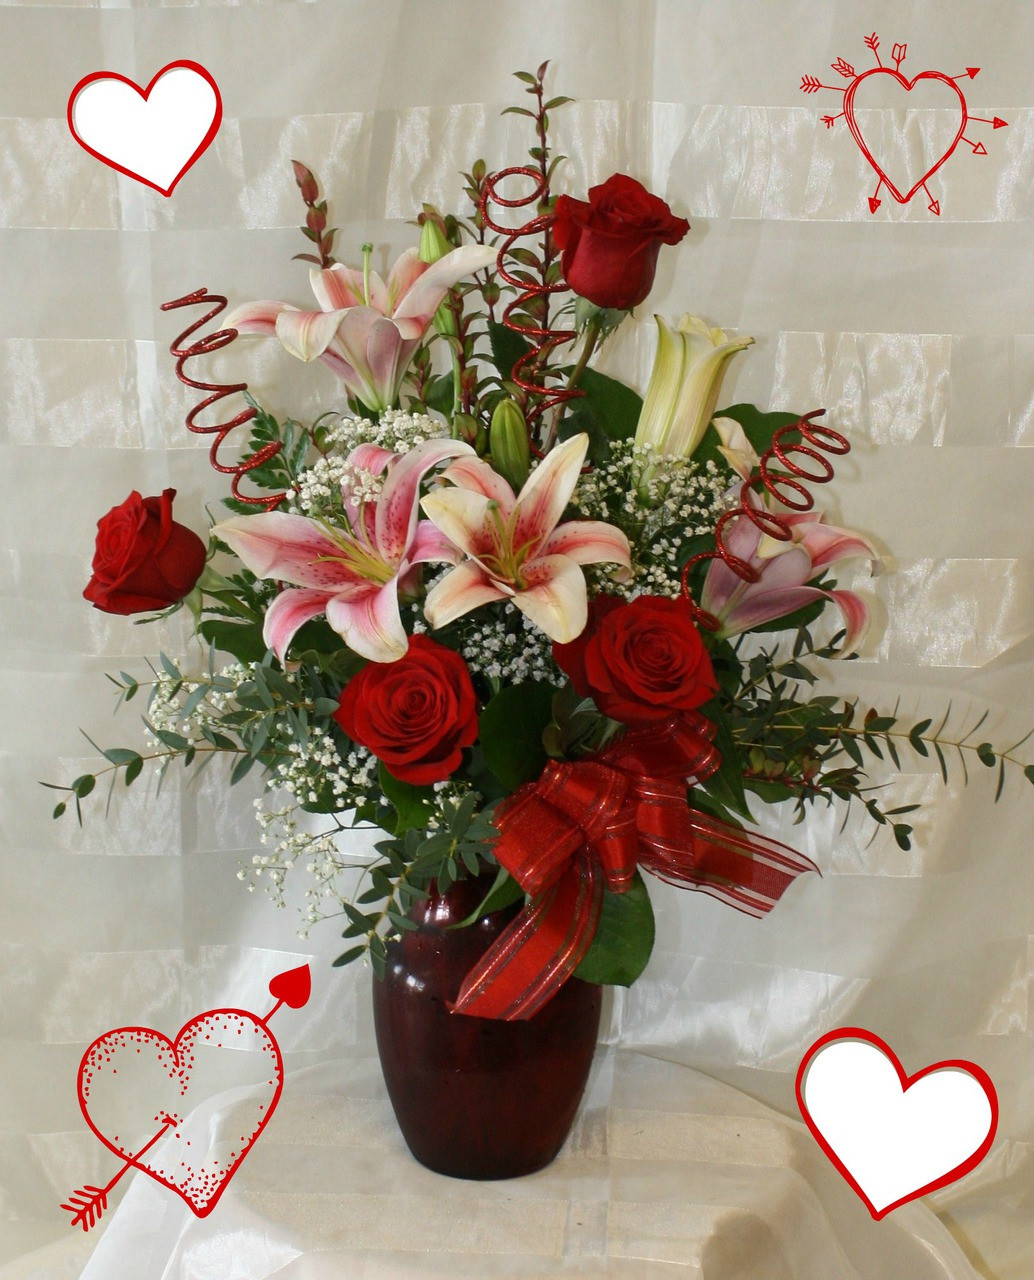 My Heart Is Yours Valentines Day Flower Arrangements